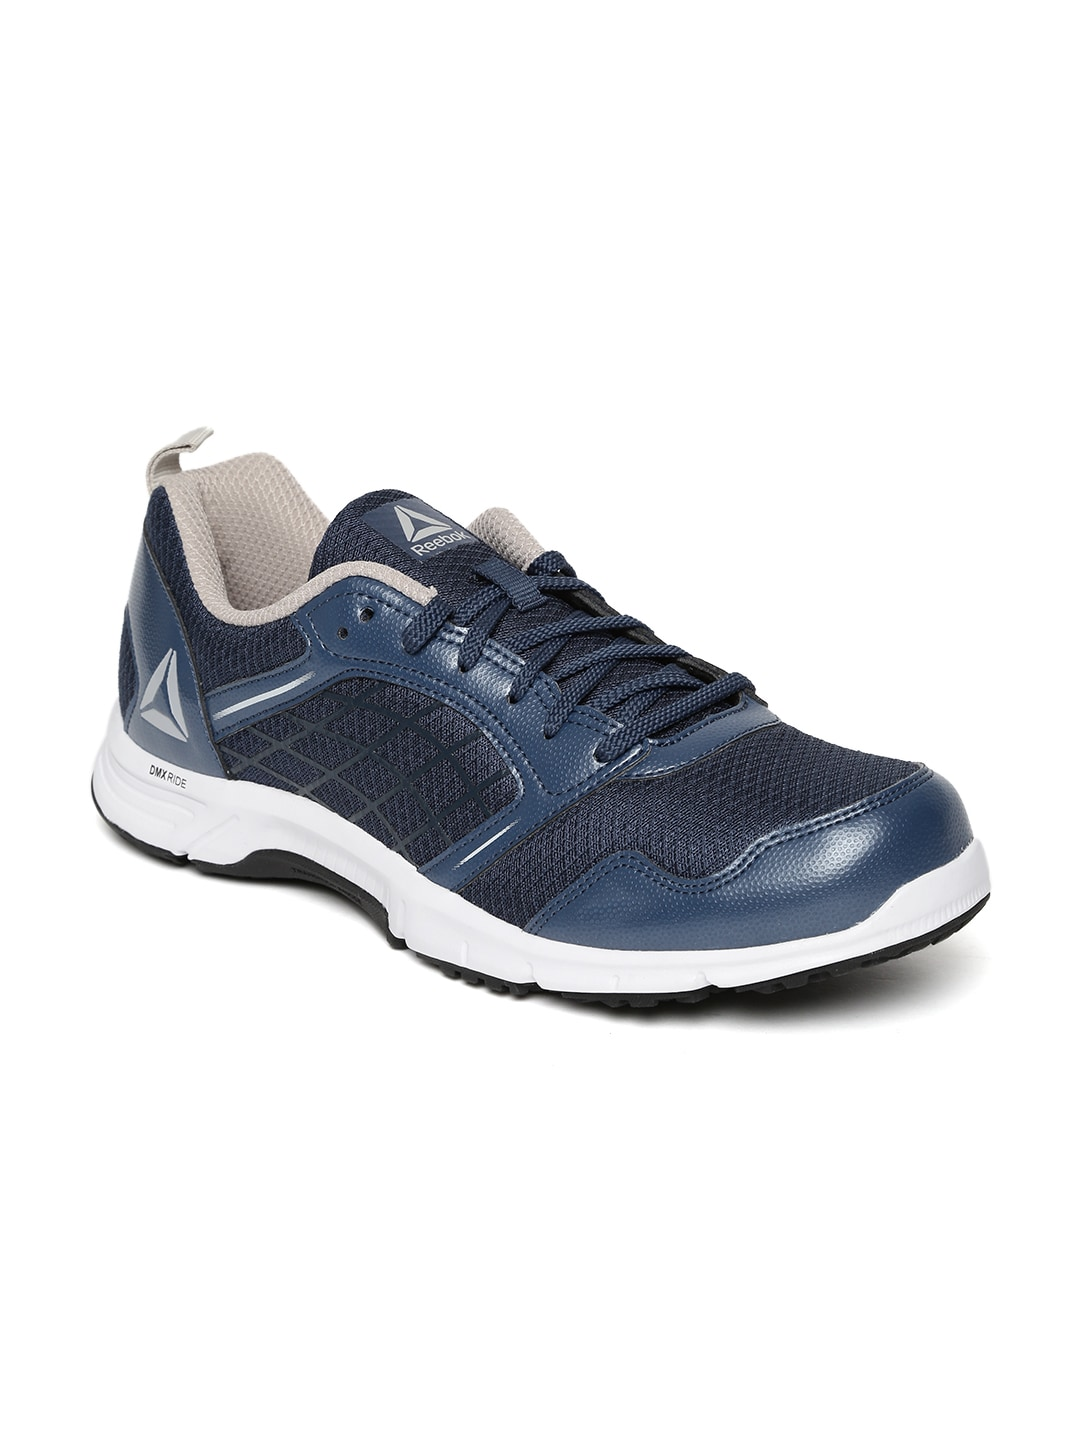 c3c6e85ace5 Sports Shoes - Buy Sport Shoes For Men   Women Online